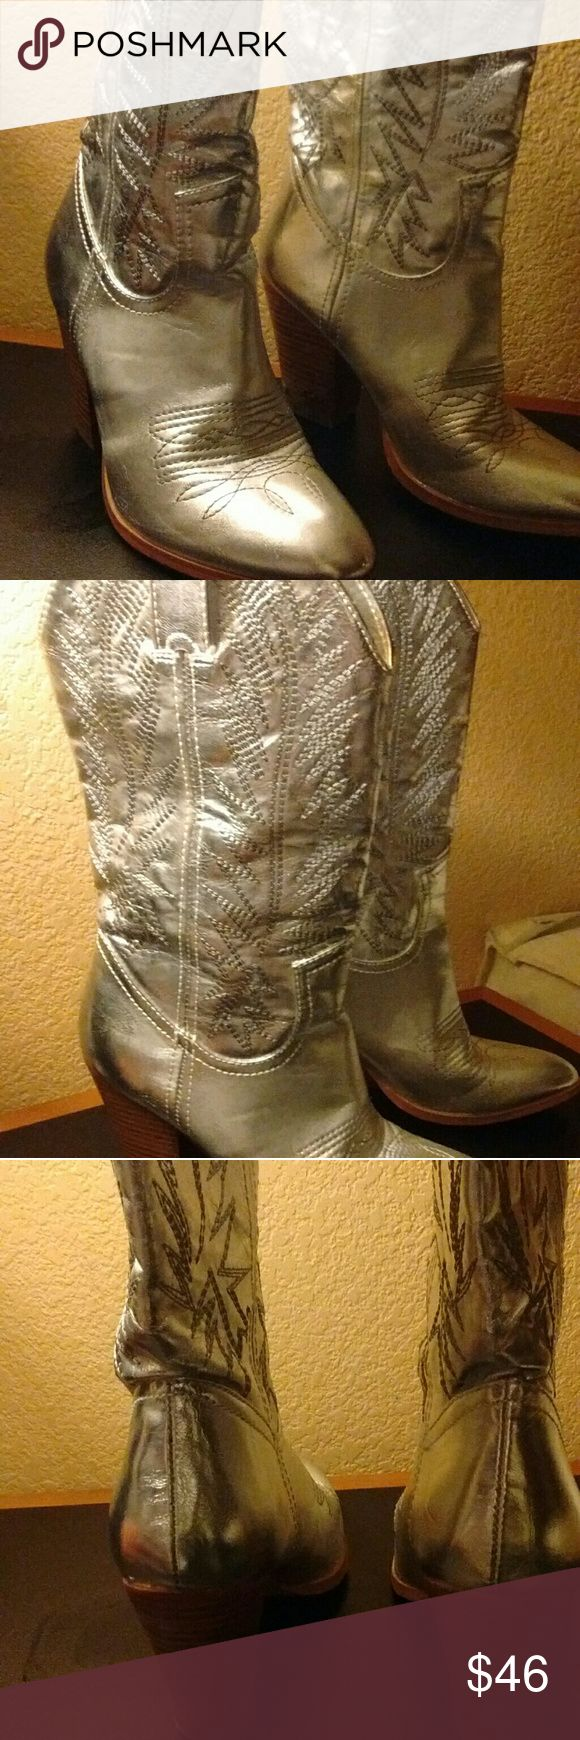 Cowgirl boots Awesome silver boots great condition Miranda Lambert Shoes Heeled Boots